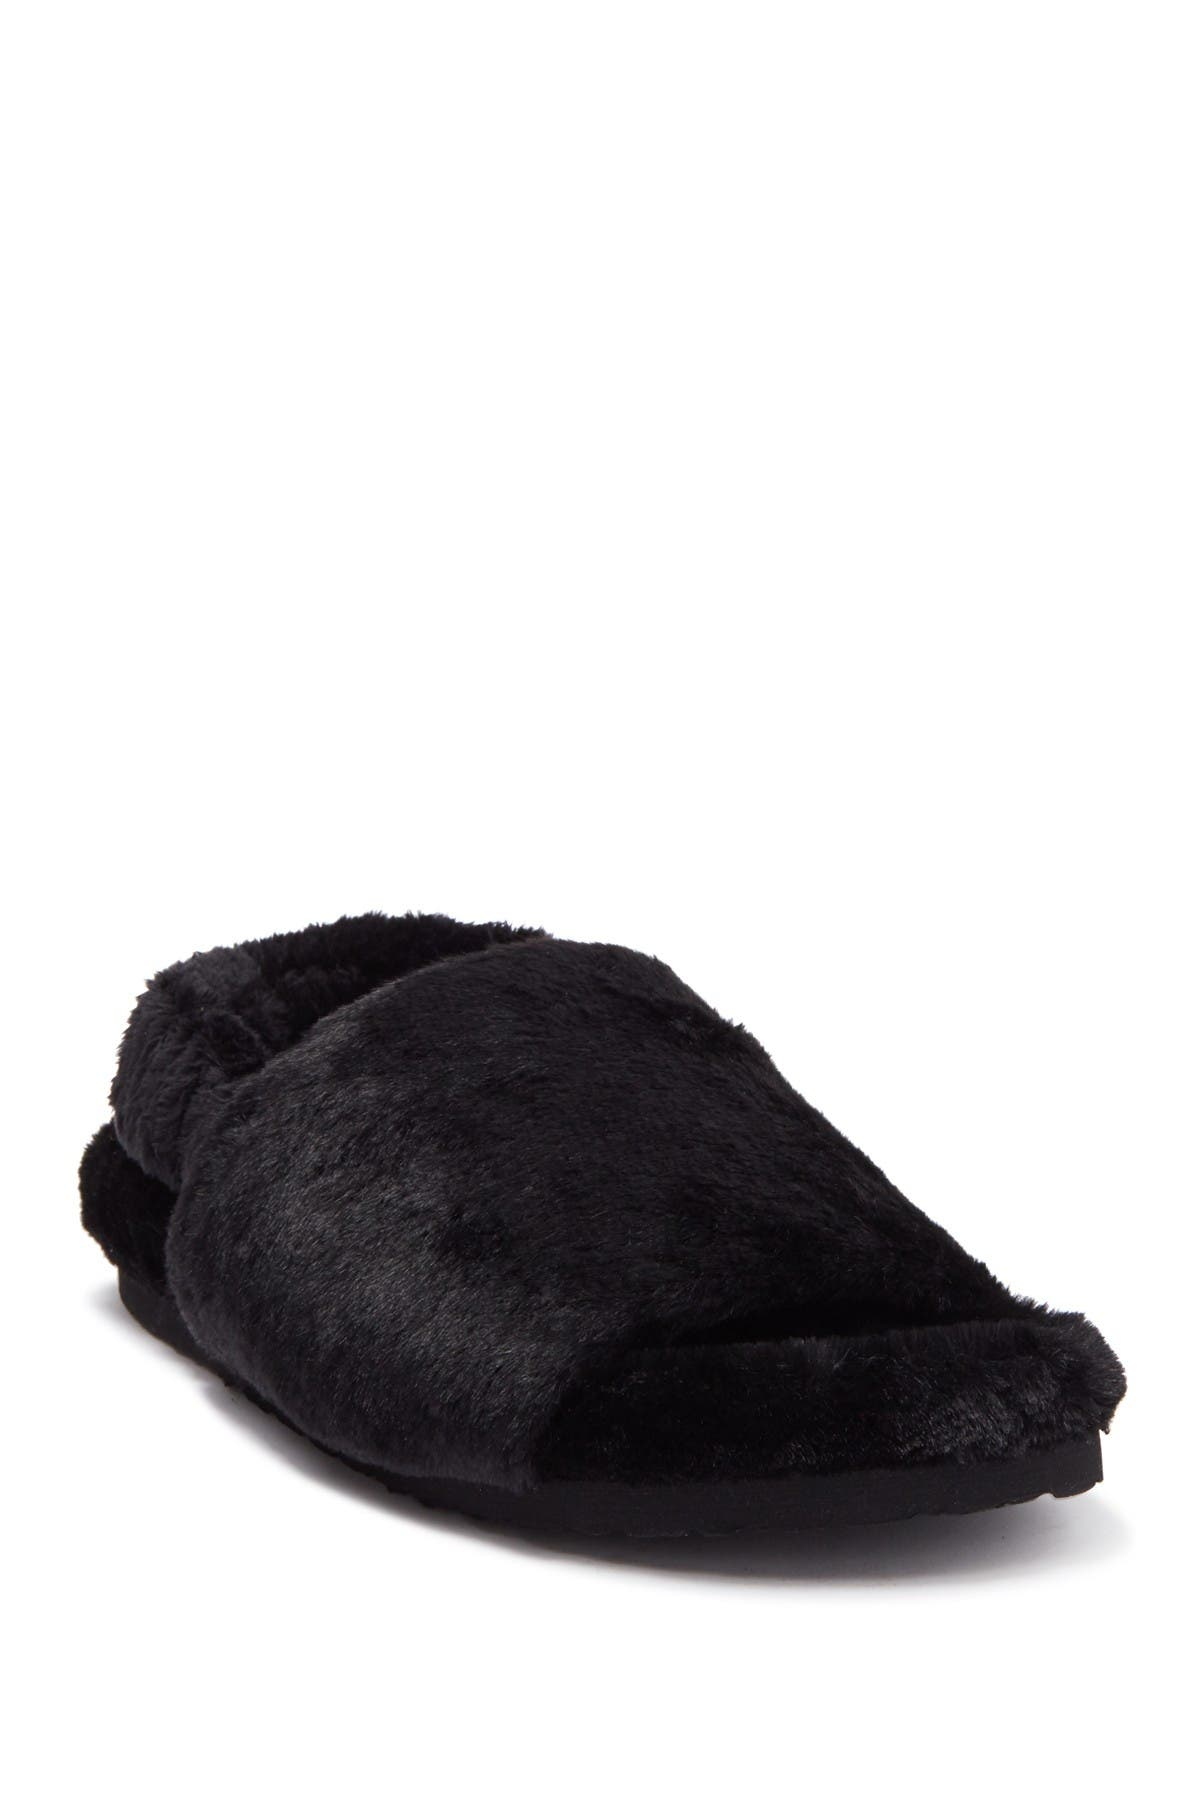 Image of Steve Madden Fidget Faux Fur Slipper